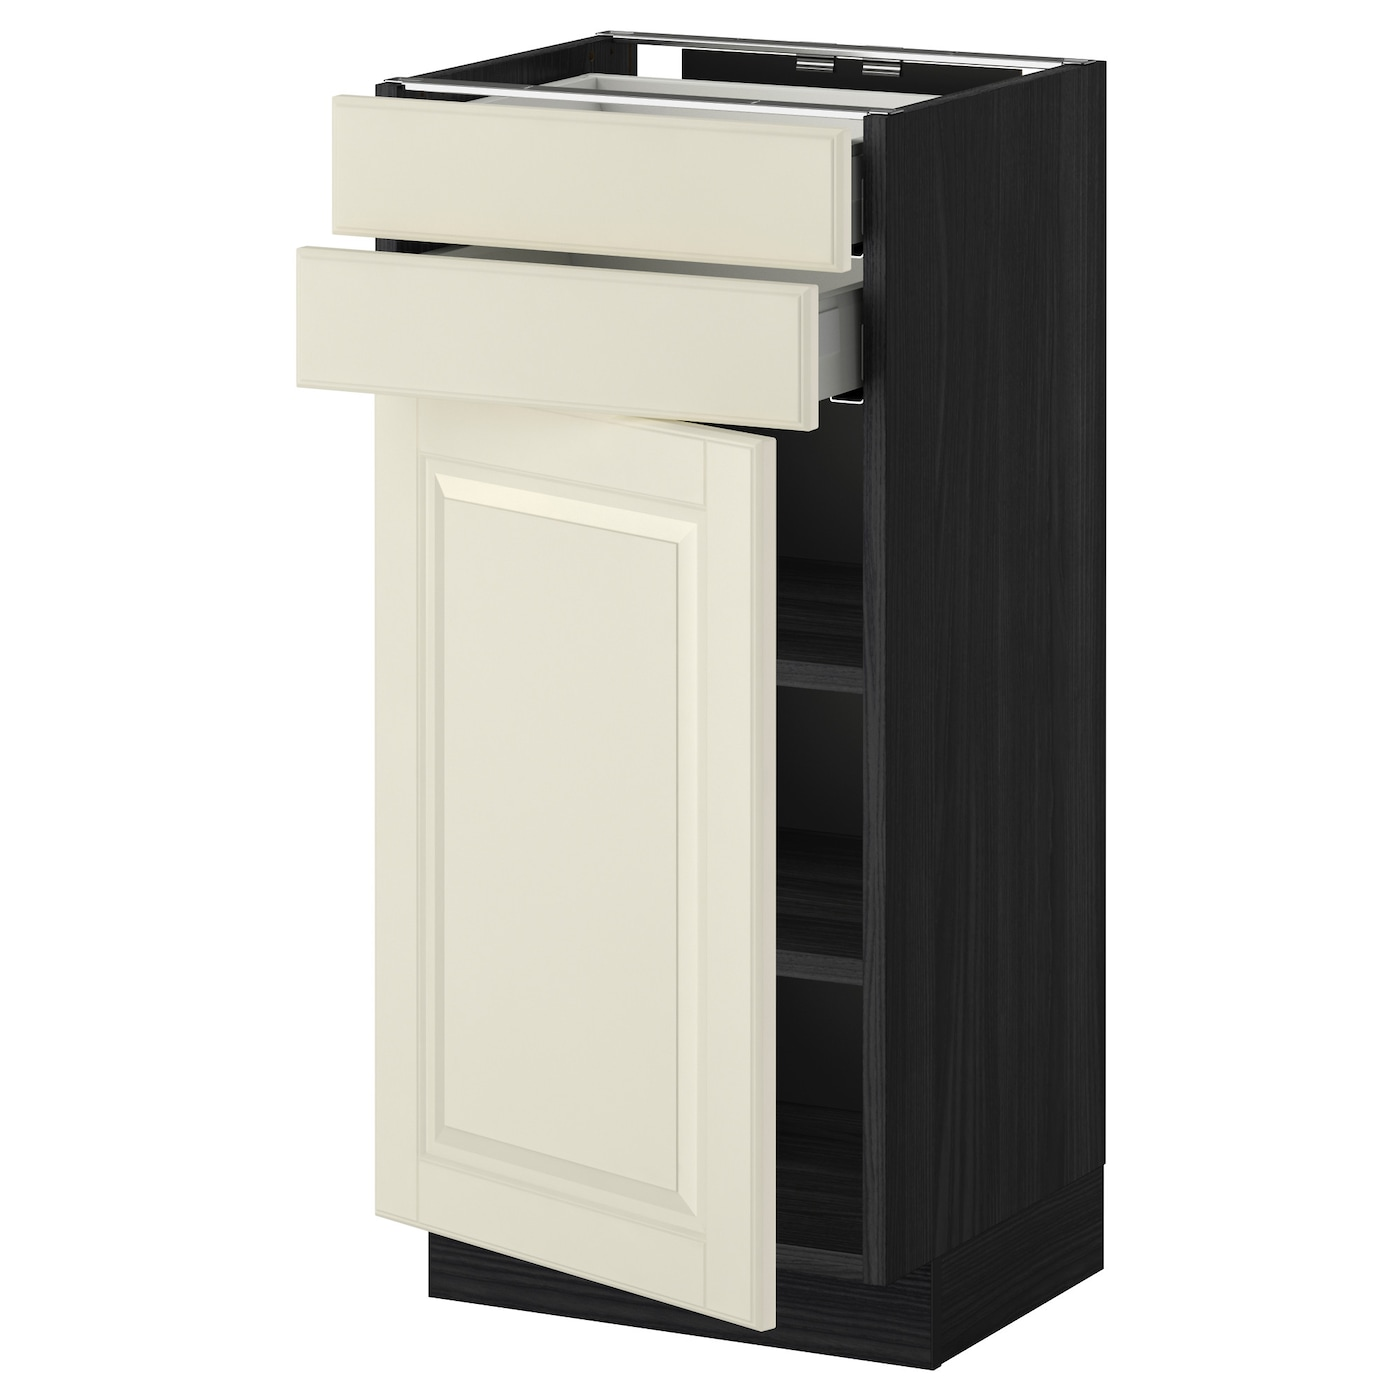 Metod Maximera Base Cabinet W Door 2 Drawers Black Bodbyn Off White 40x37 Cm Ikea